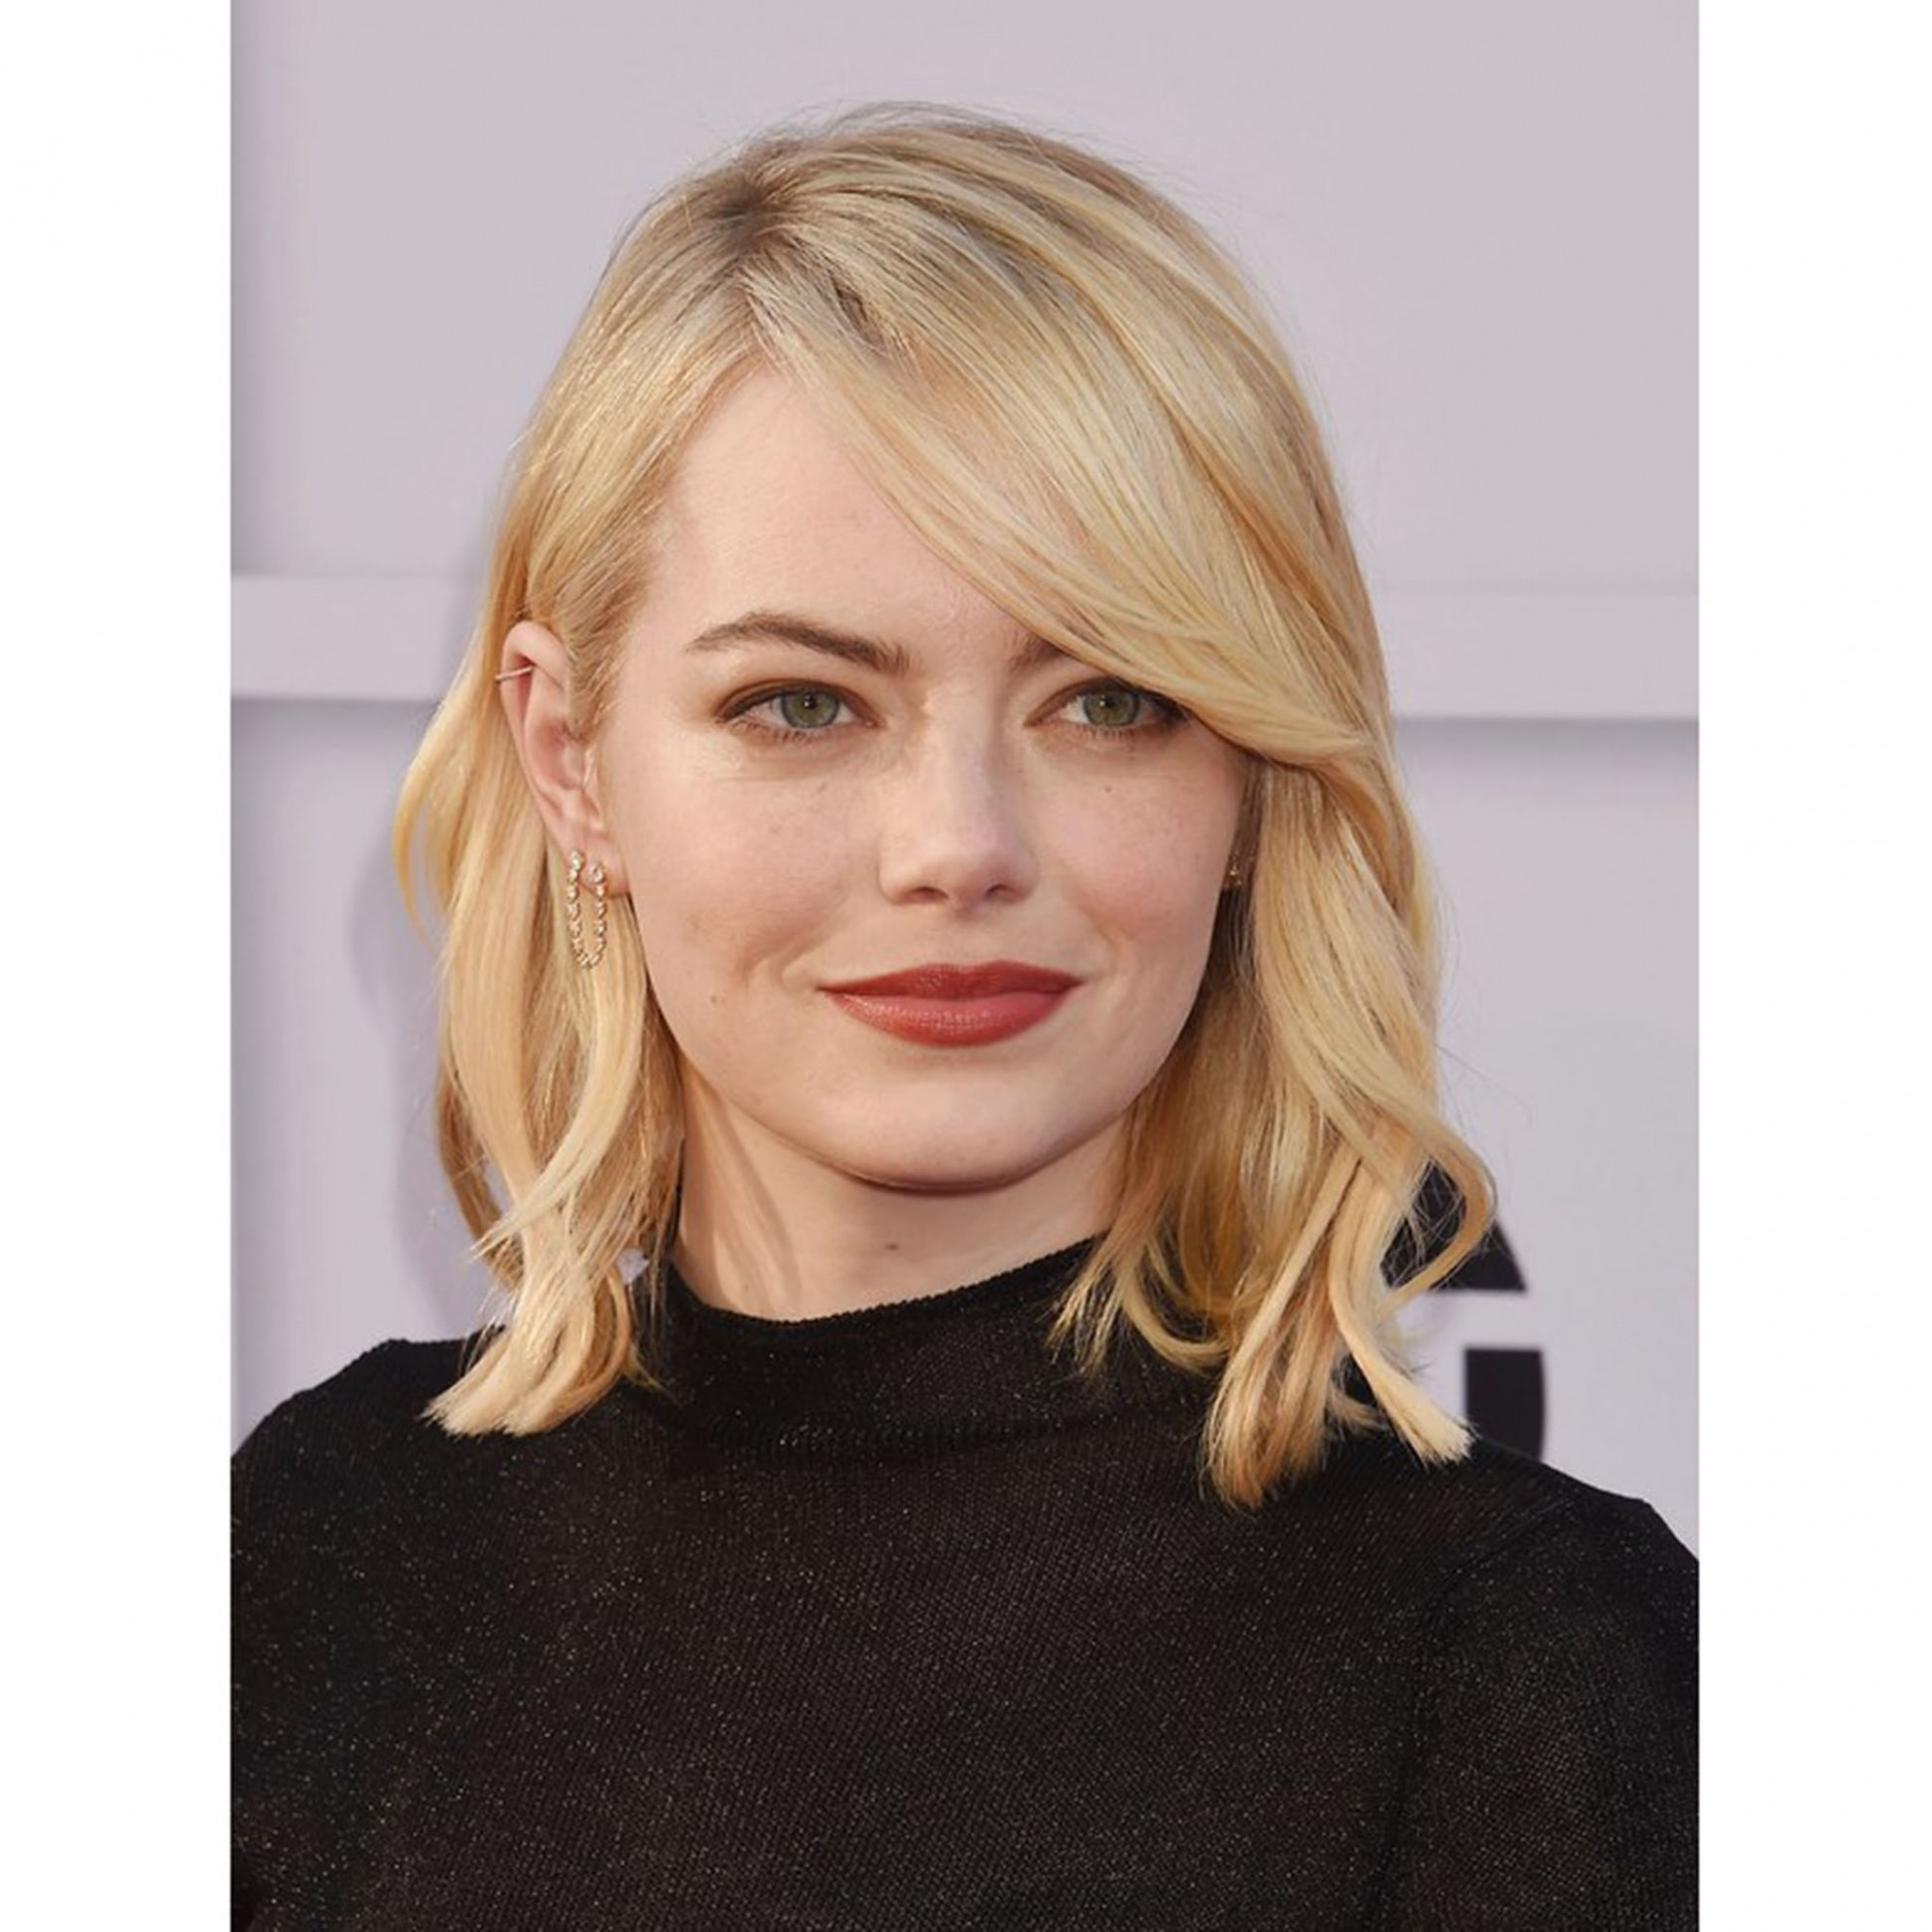 The 12 Best Haircuts For Round Faces, According To Stylists Allure Haircut For Long Hair Round Face